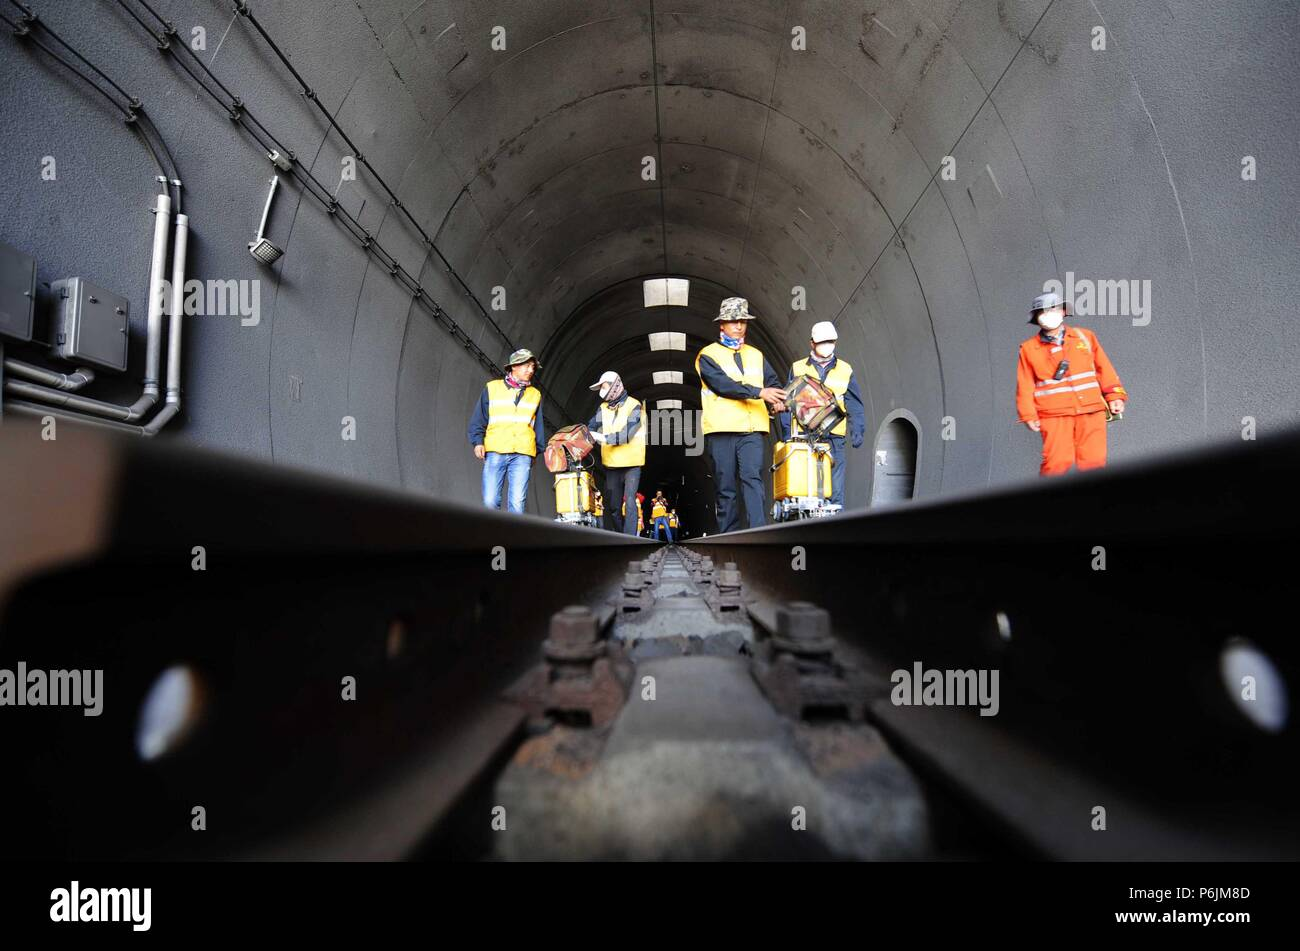 Beijing, Qinghai-Tibet Railway in northwest China's Qinghai Province. 27th June, 2018. Maintenance workers check the tracks at the Xinguanjiao Tunnel, the world's longest plateau rail tunnel, along the Qinghai-Tibet Railway in northwest China's Qinghai Province, June 27, 2018. Credit: Hou Deqiang/Xinhua/Alamy Live News - Stock Image